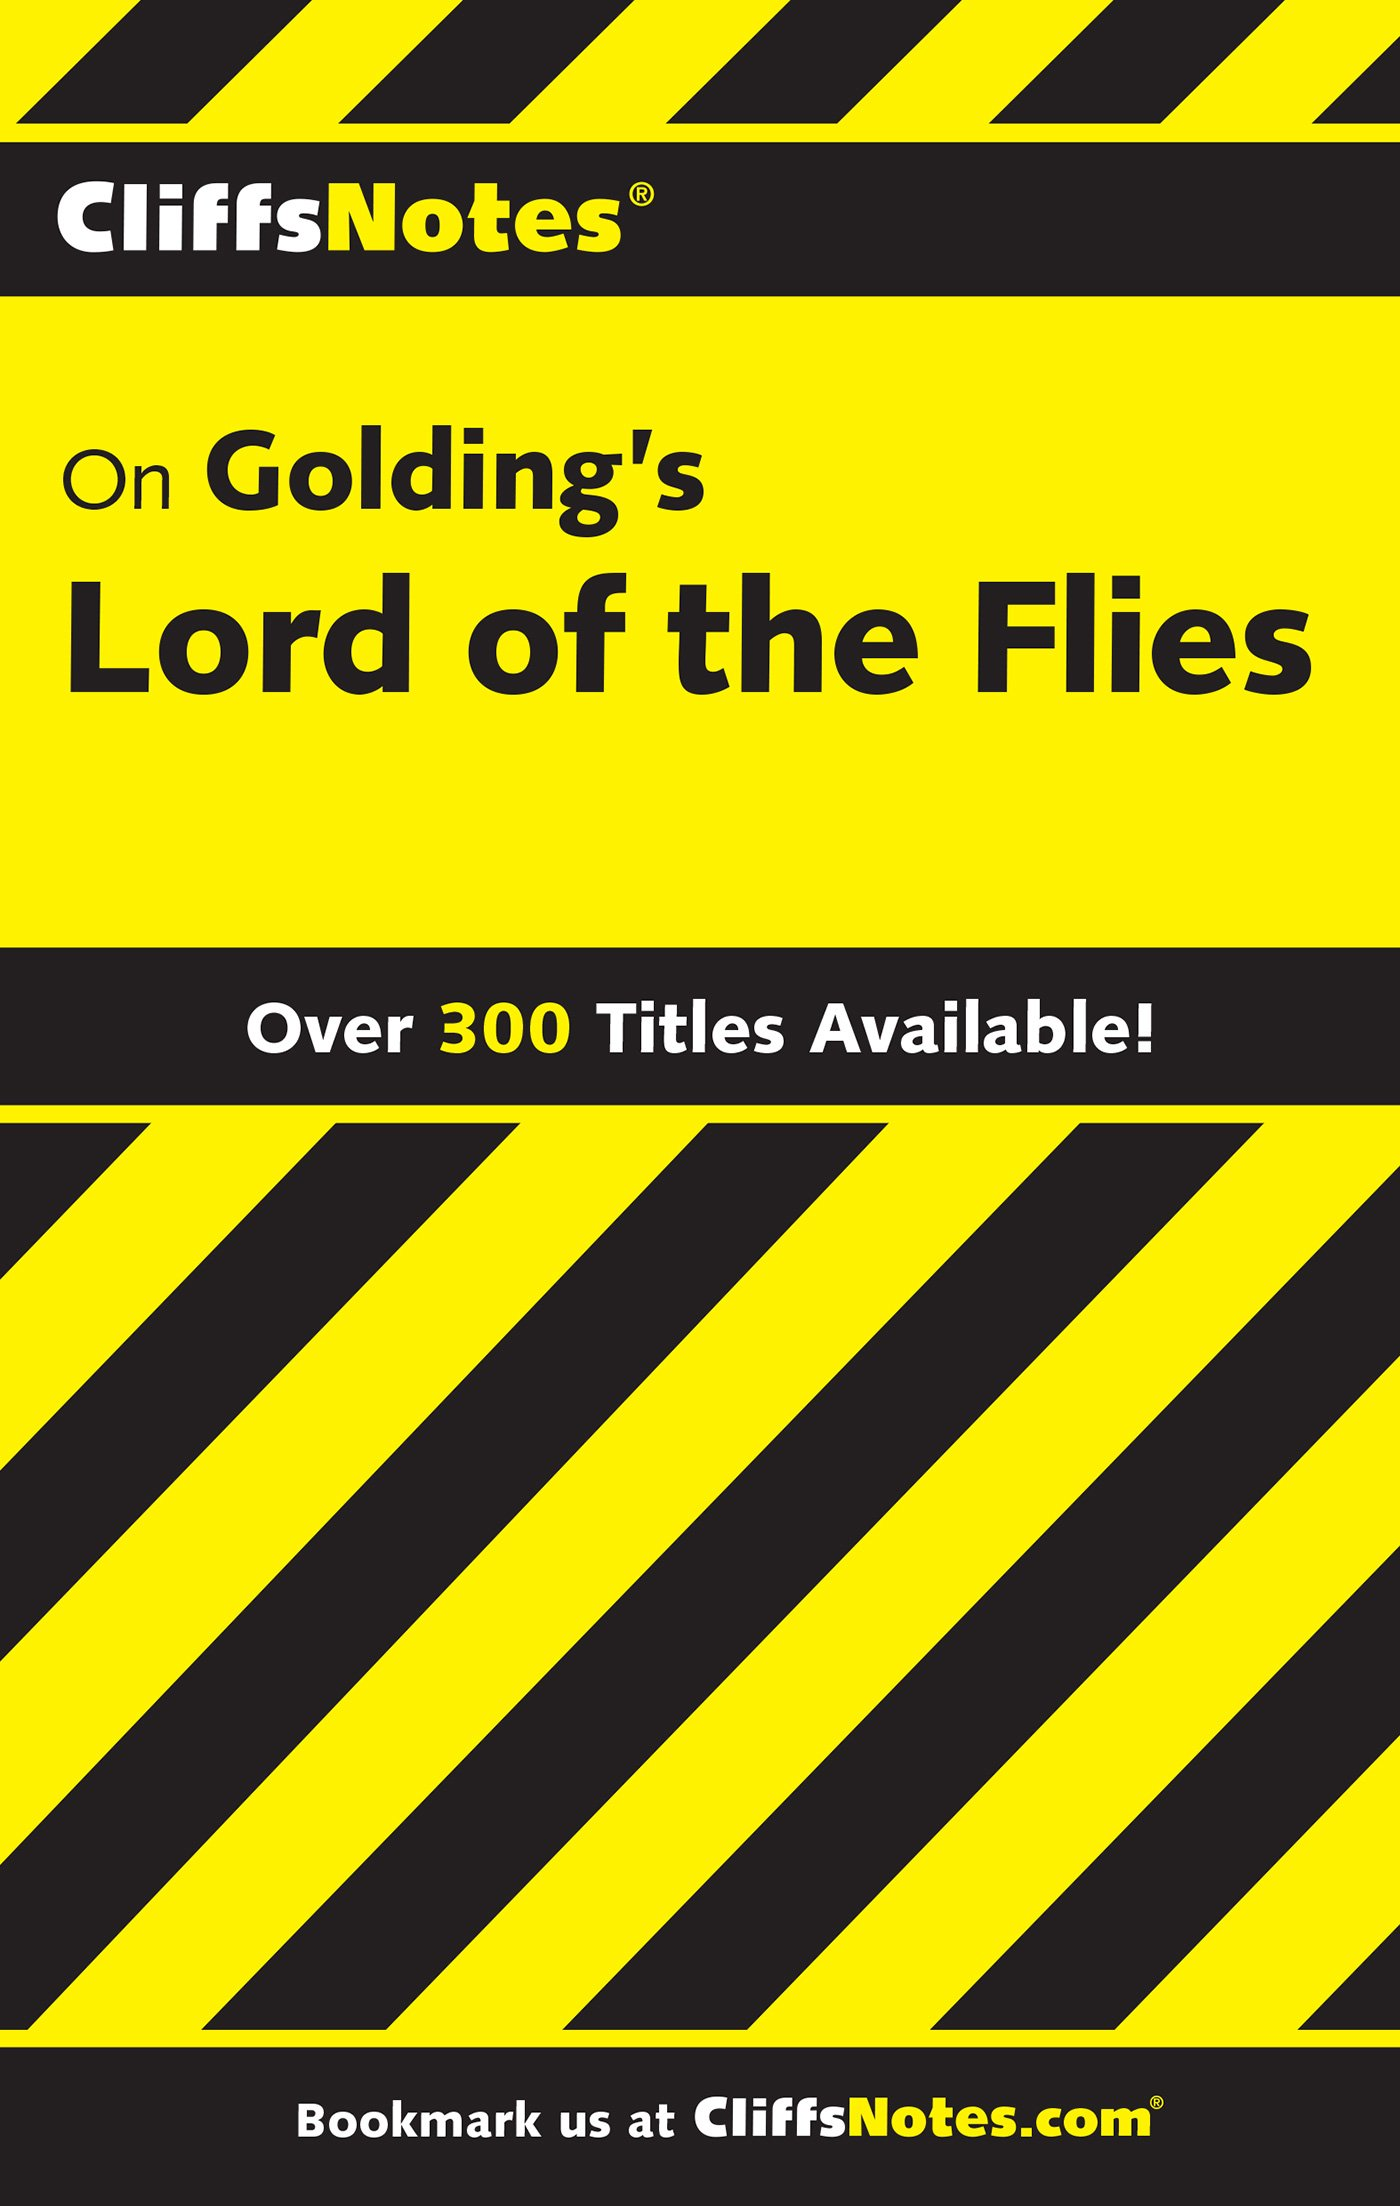 com cliffsnotes on golding s lord of the flies  com cliffsnotes on golding s lord of the flies cliffsnotes literature 9780764585975 maureen kelly books